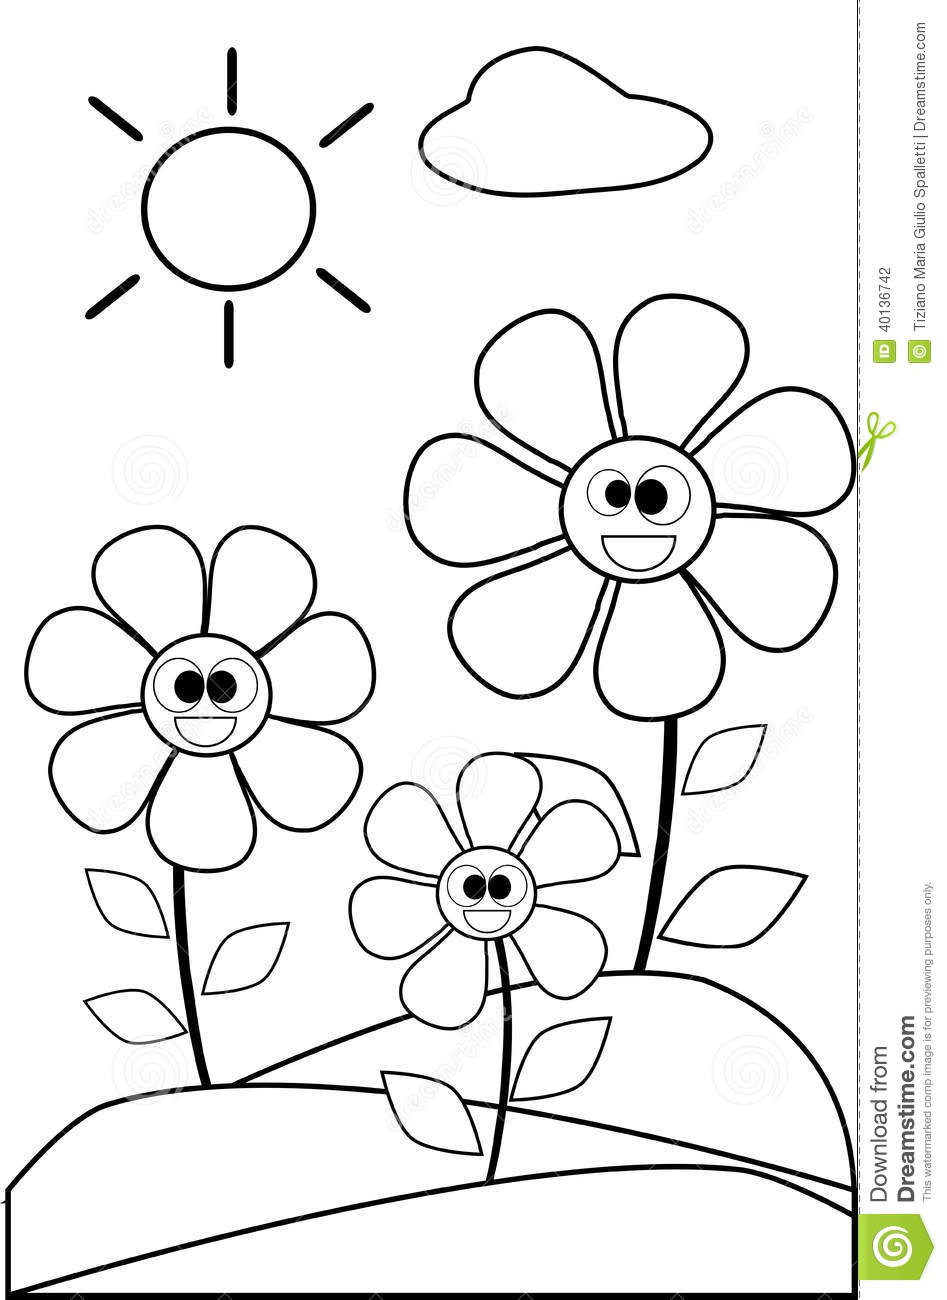 coloring flower clipart black and white vintage flower garden clip art black and white flowers flower clipart black white and coloring